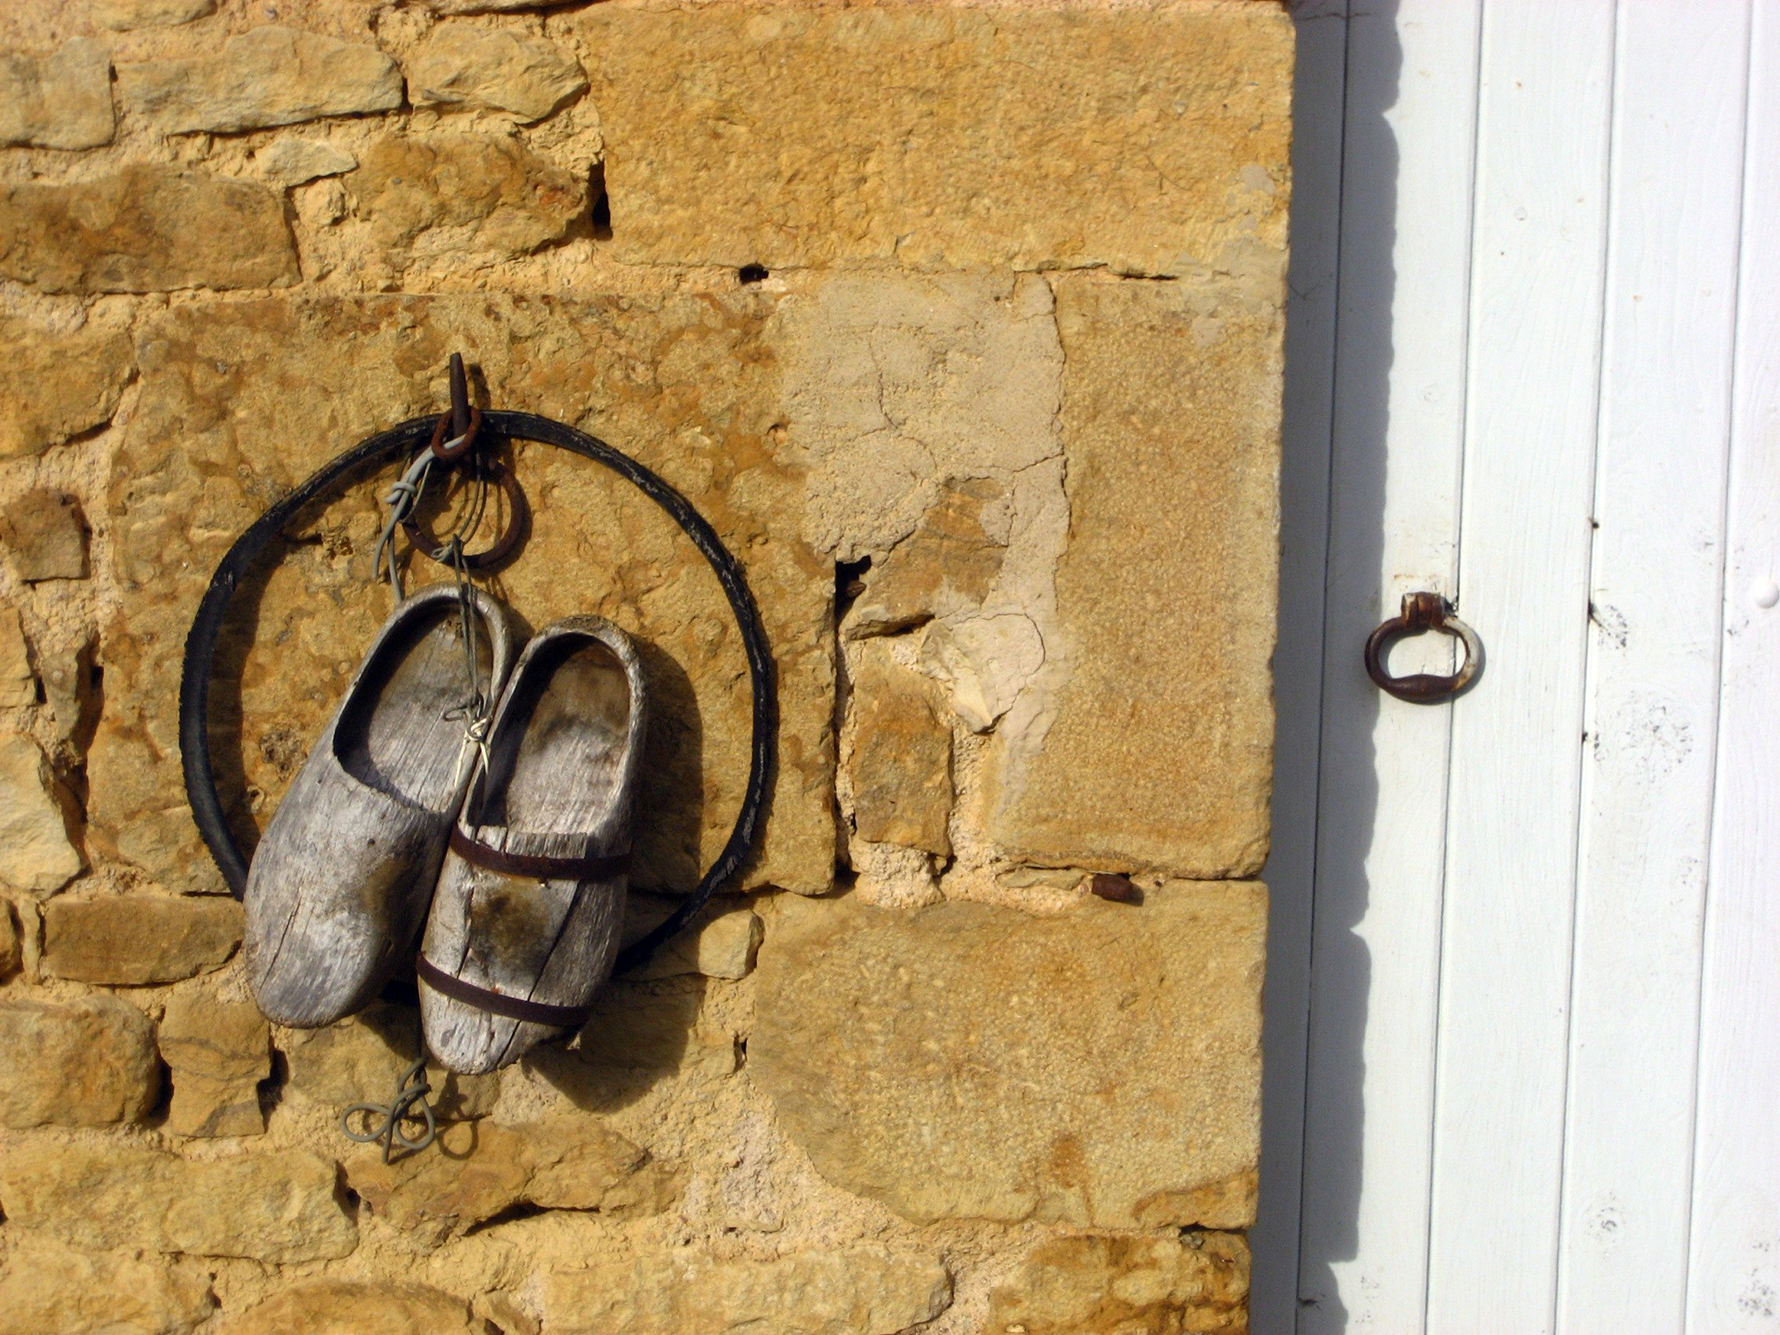 Two wooden clogs, sabots, hang from a wall